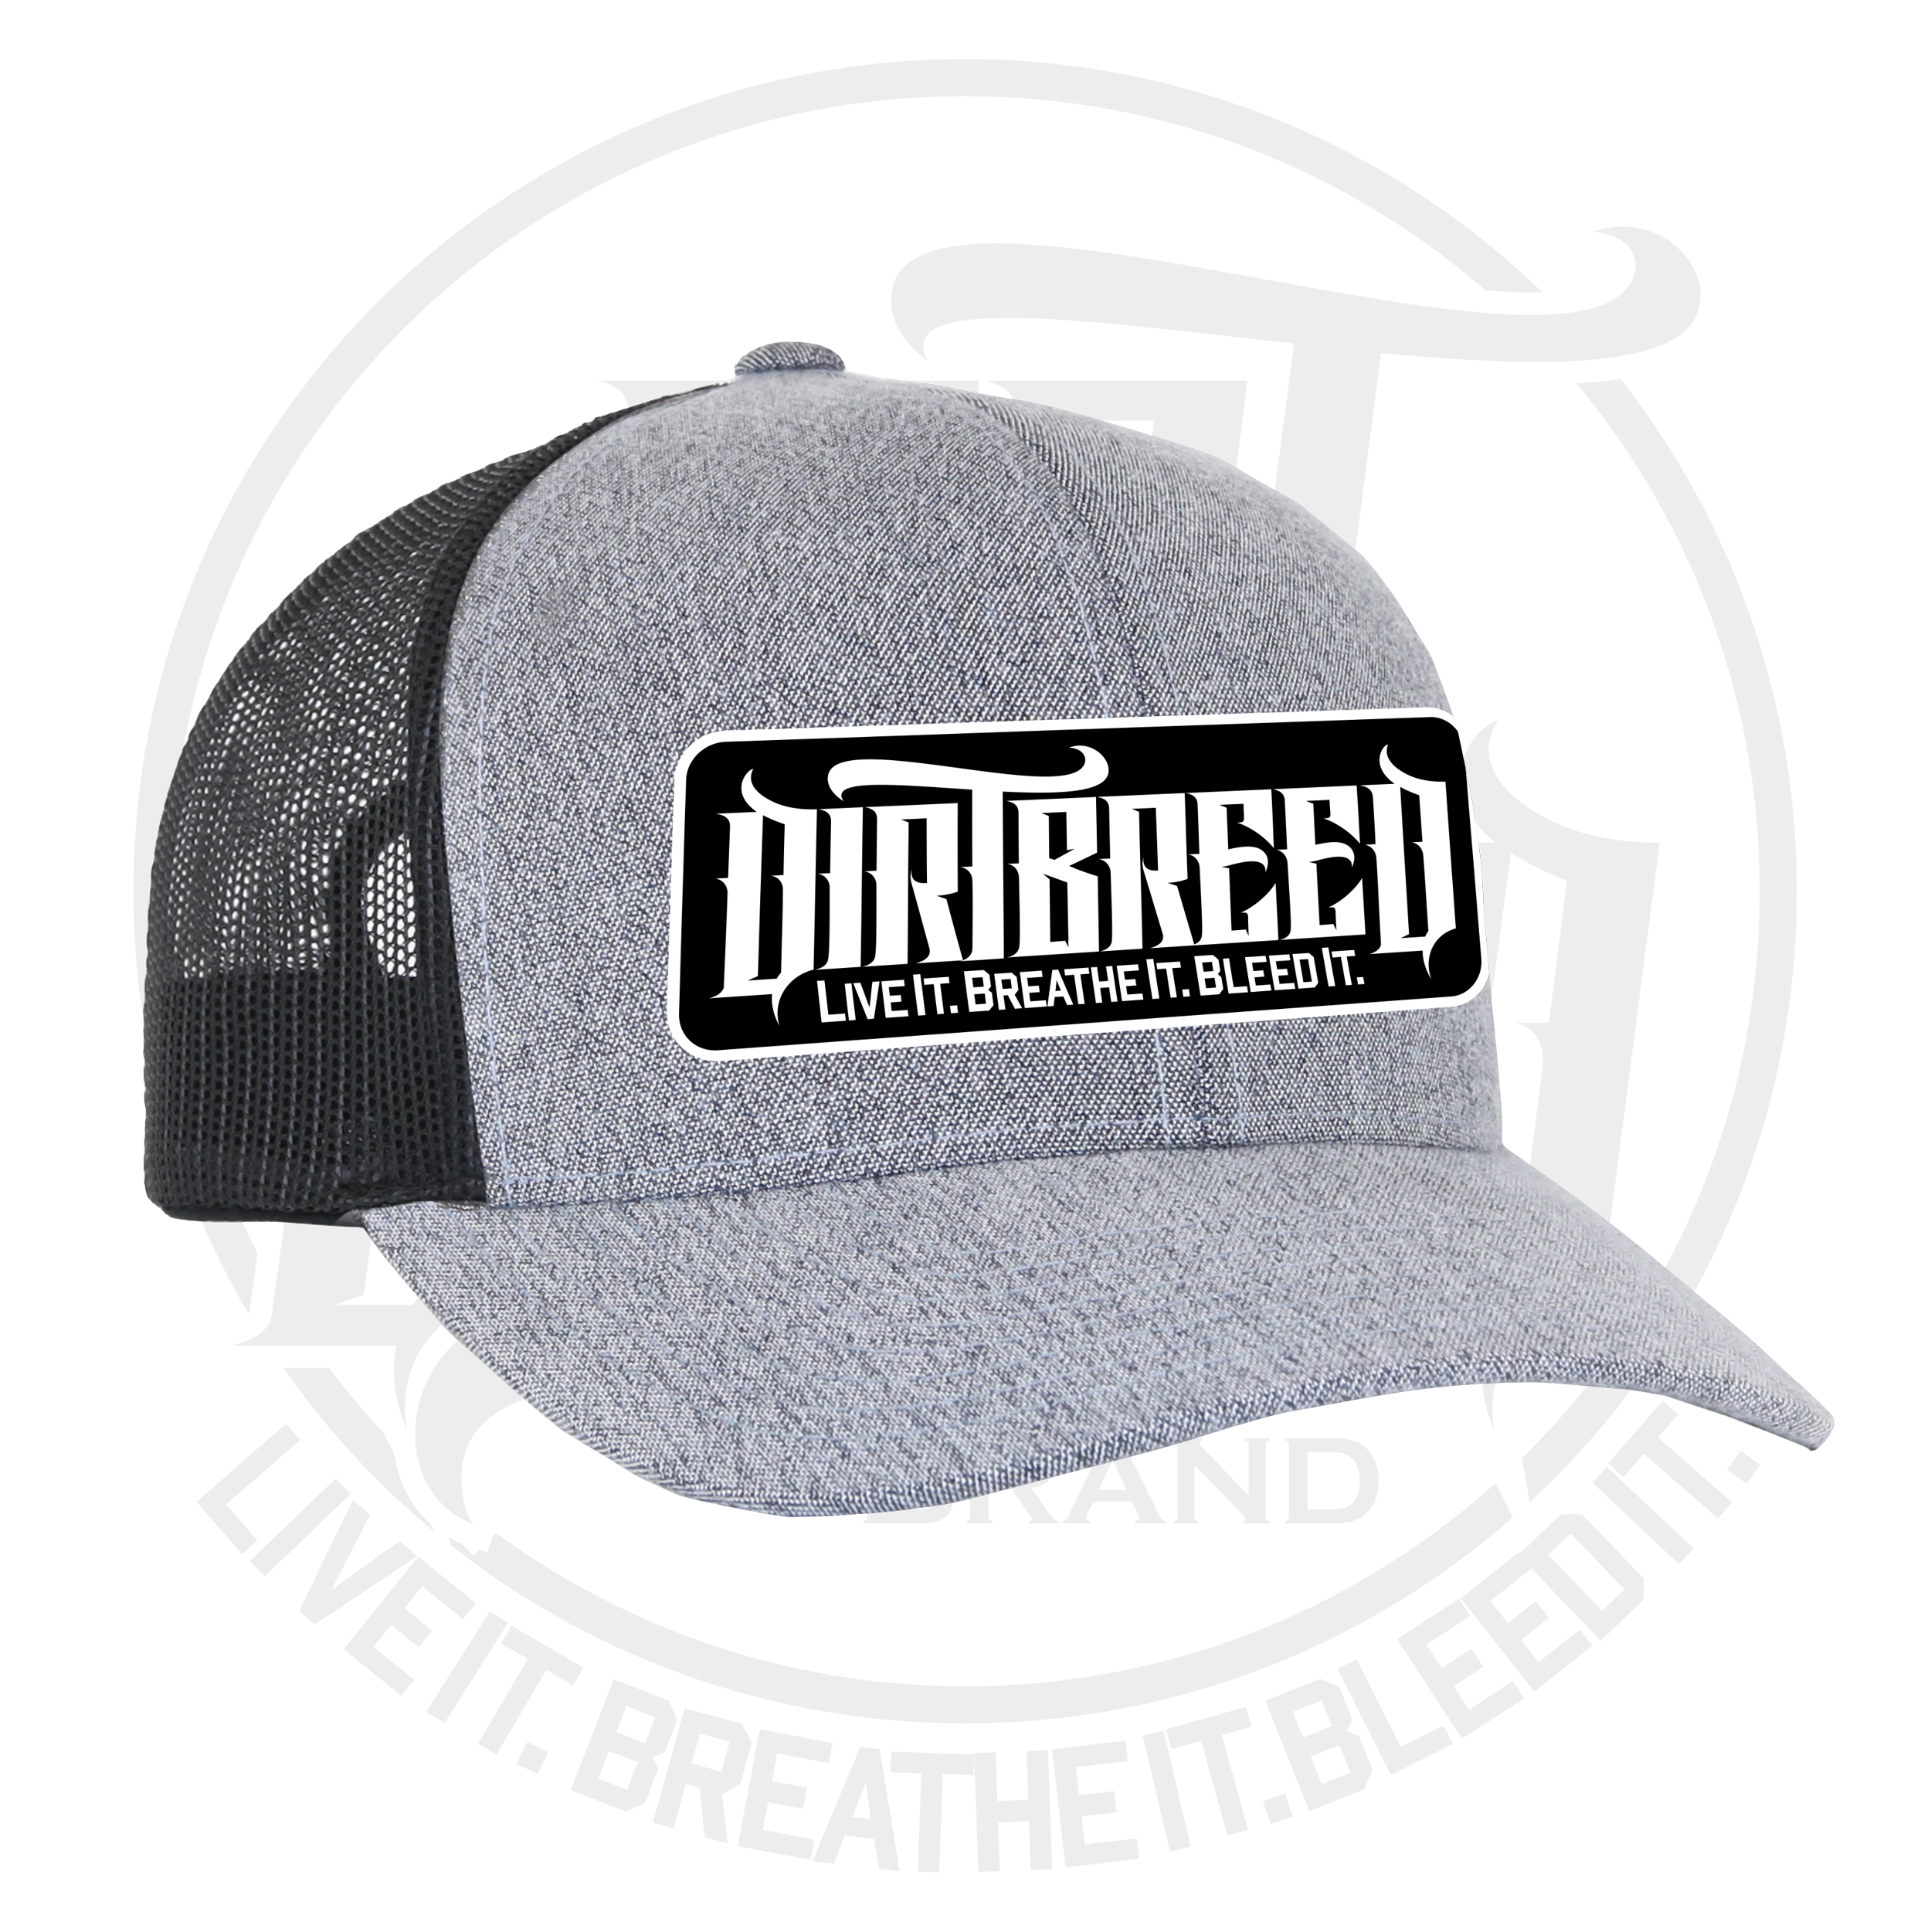 DirtBreed mesh back dirt track trucker hat